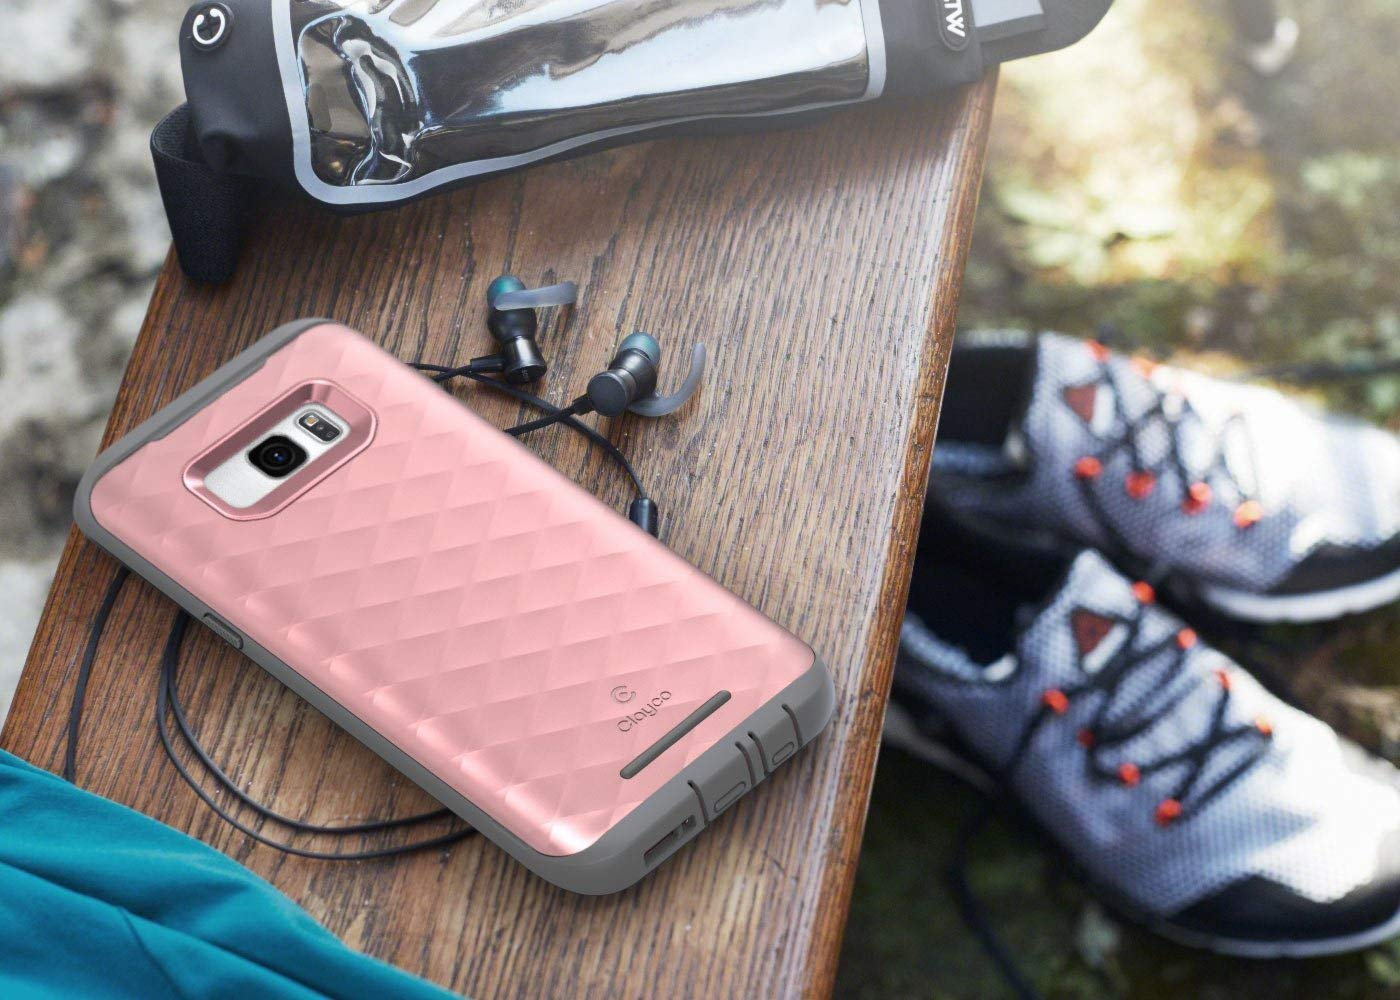 Etui pancerne Supcase Clayco Hera do Galaxy S7 Edge